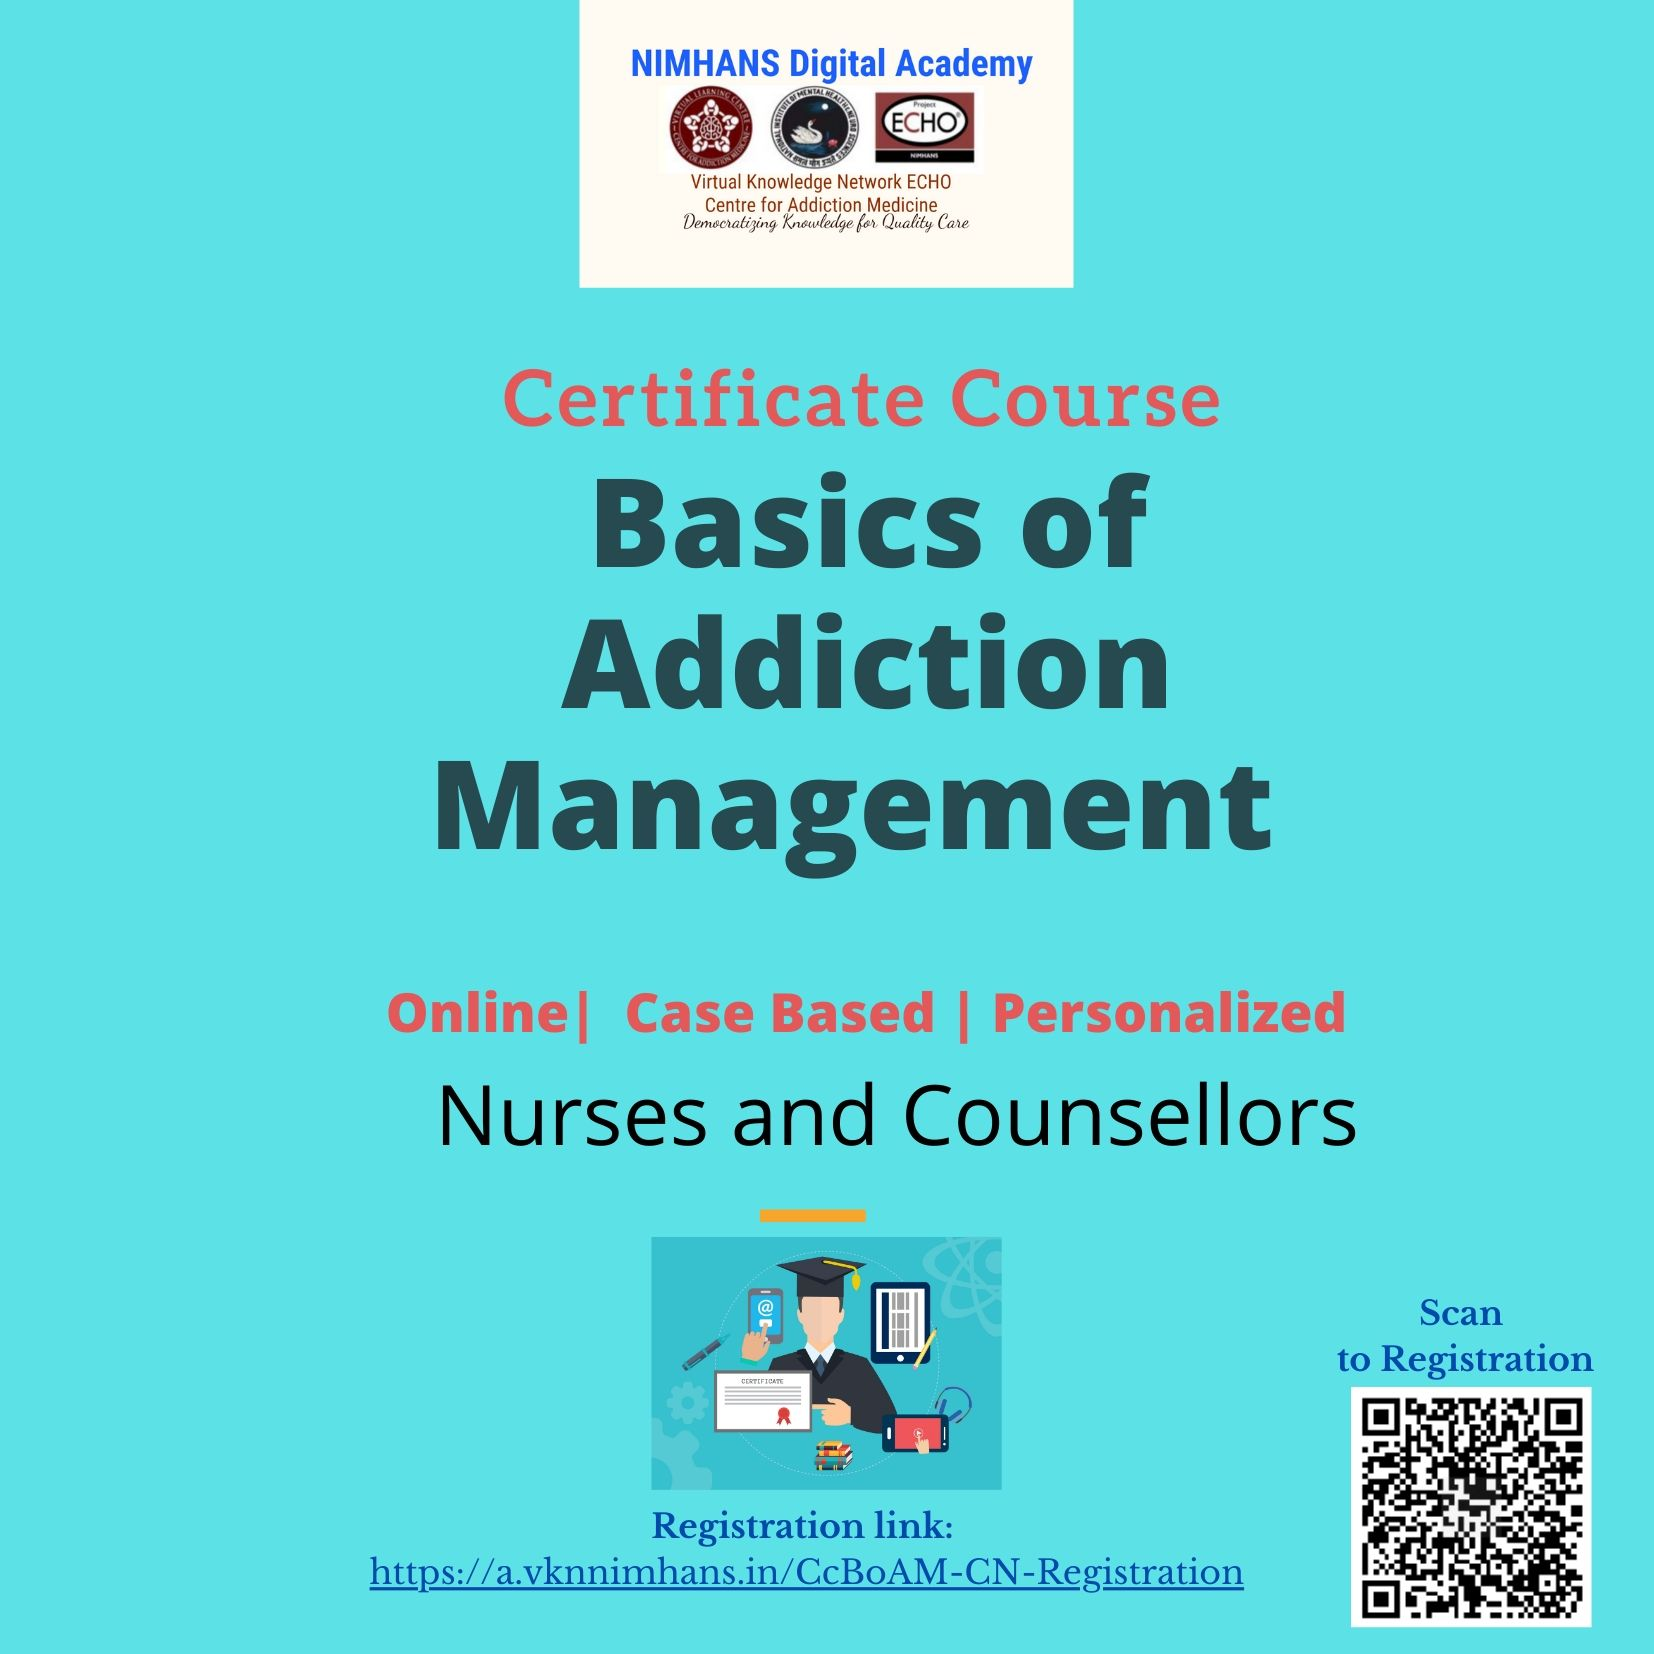 Completed: June 20:Certificate course on Basics of Addiction Management (CCBoAM) June 2020